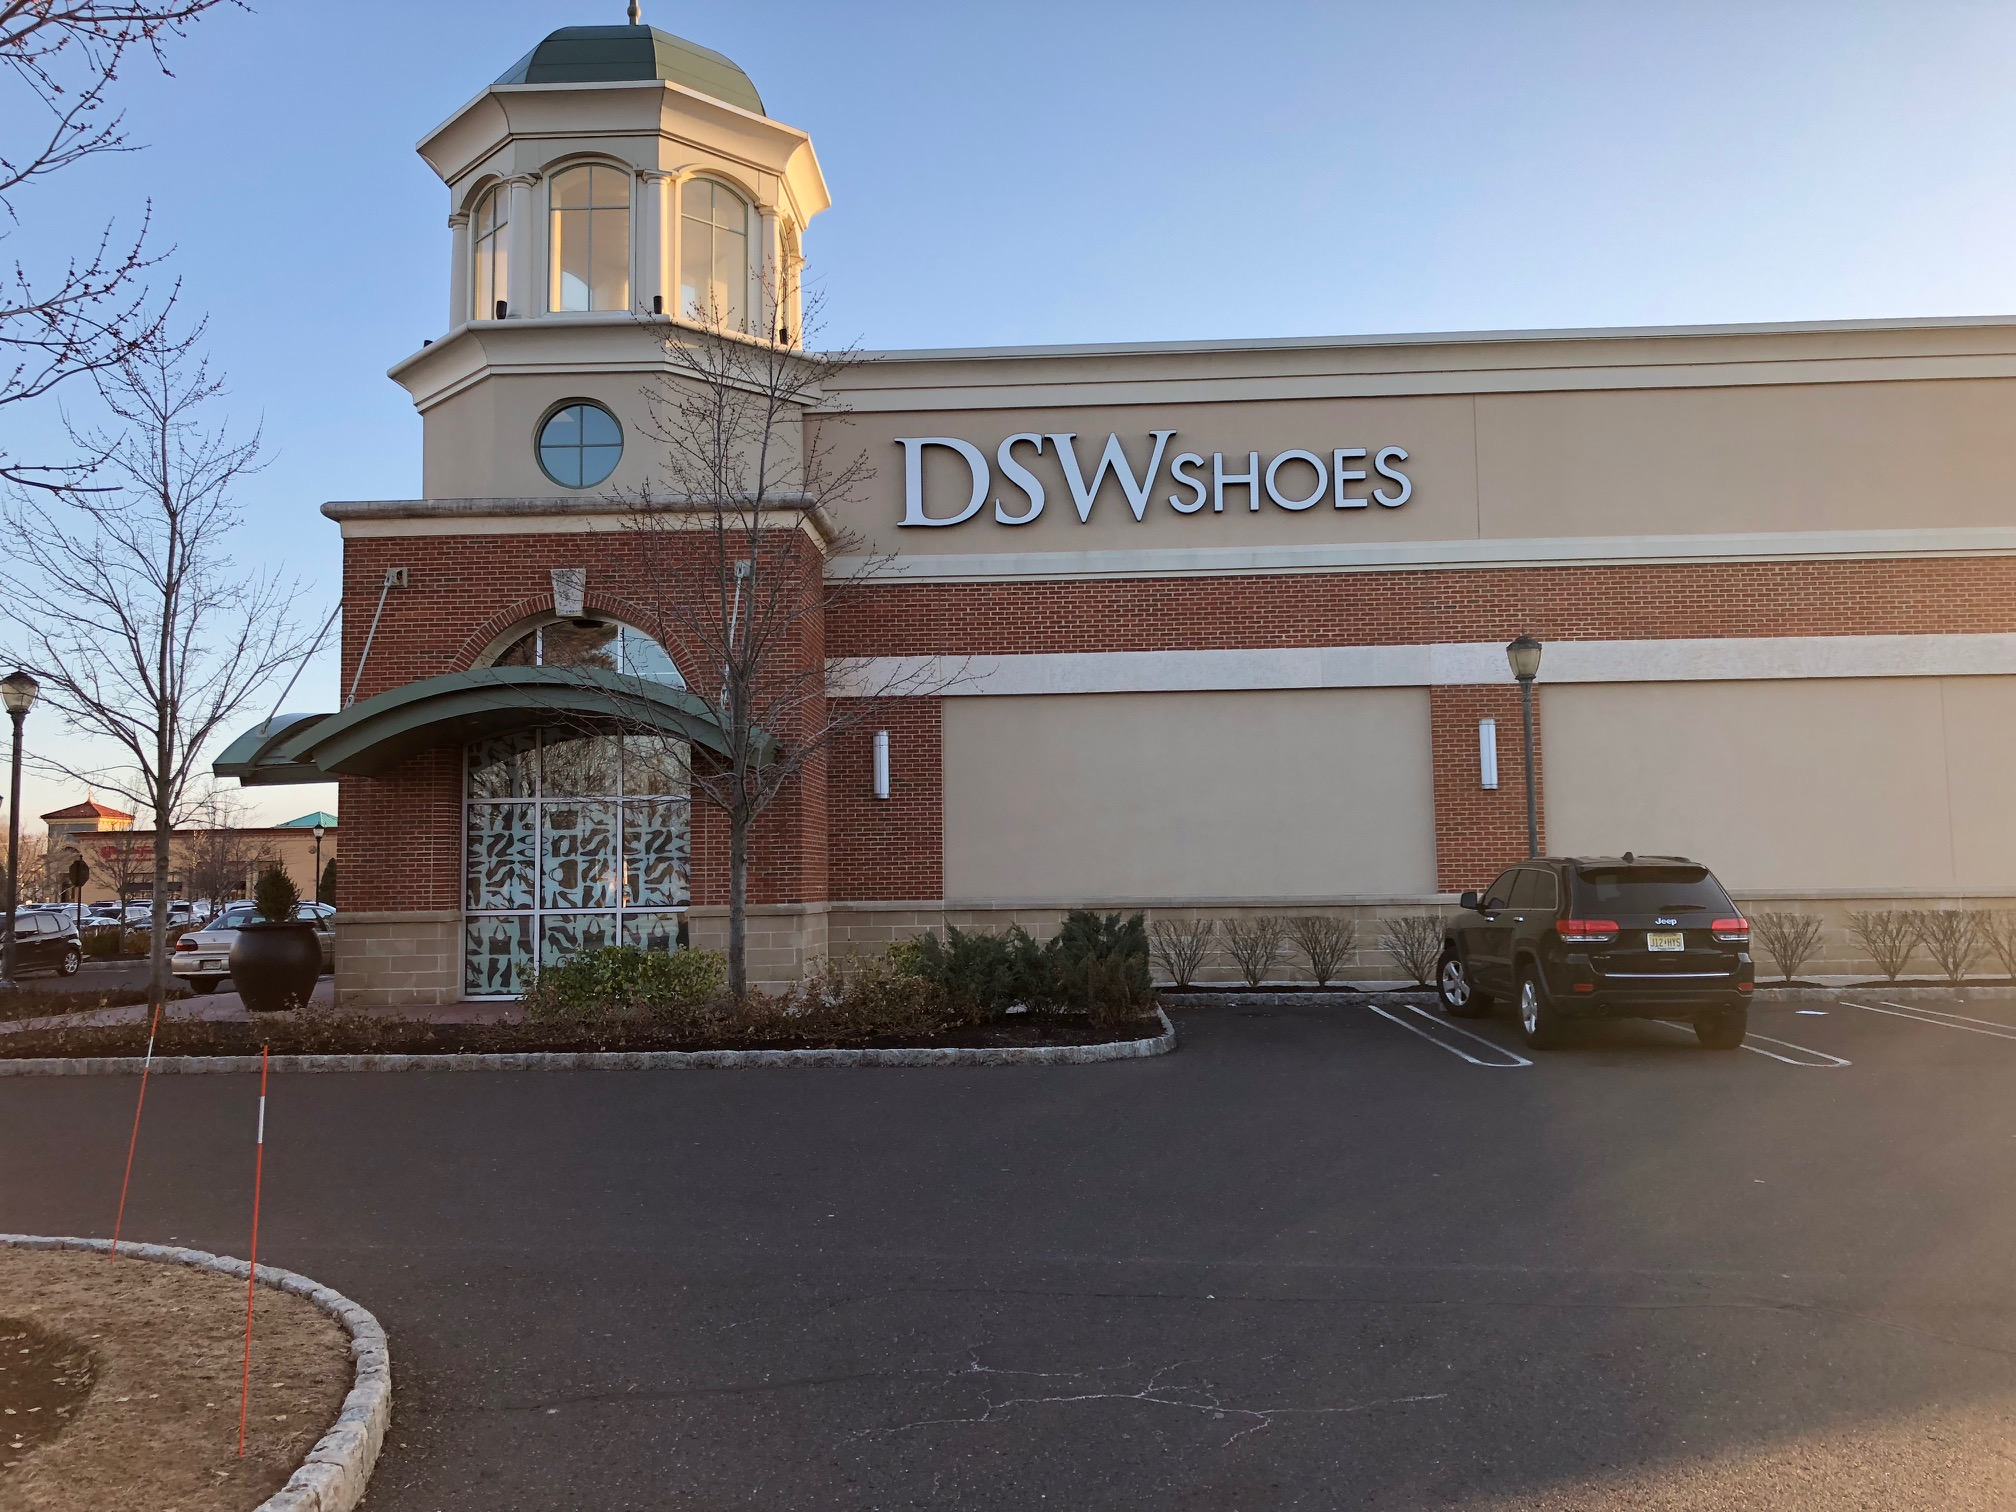 Retail space would be added for two more stores near the DSW Shoes in Cherry Hill´s Garden State Pavilion.